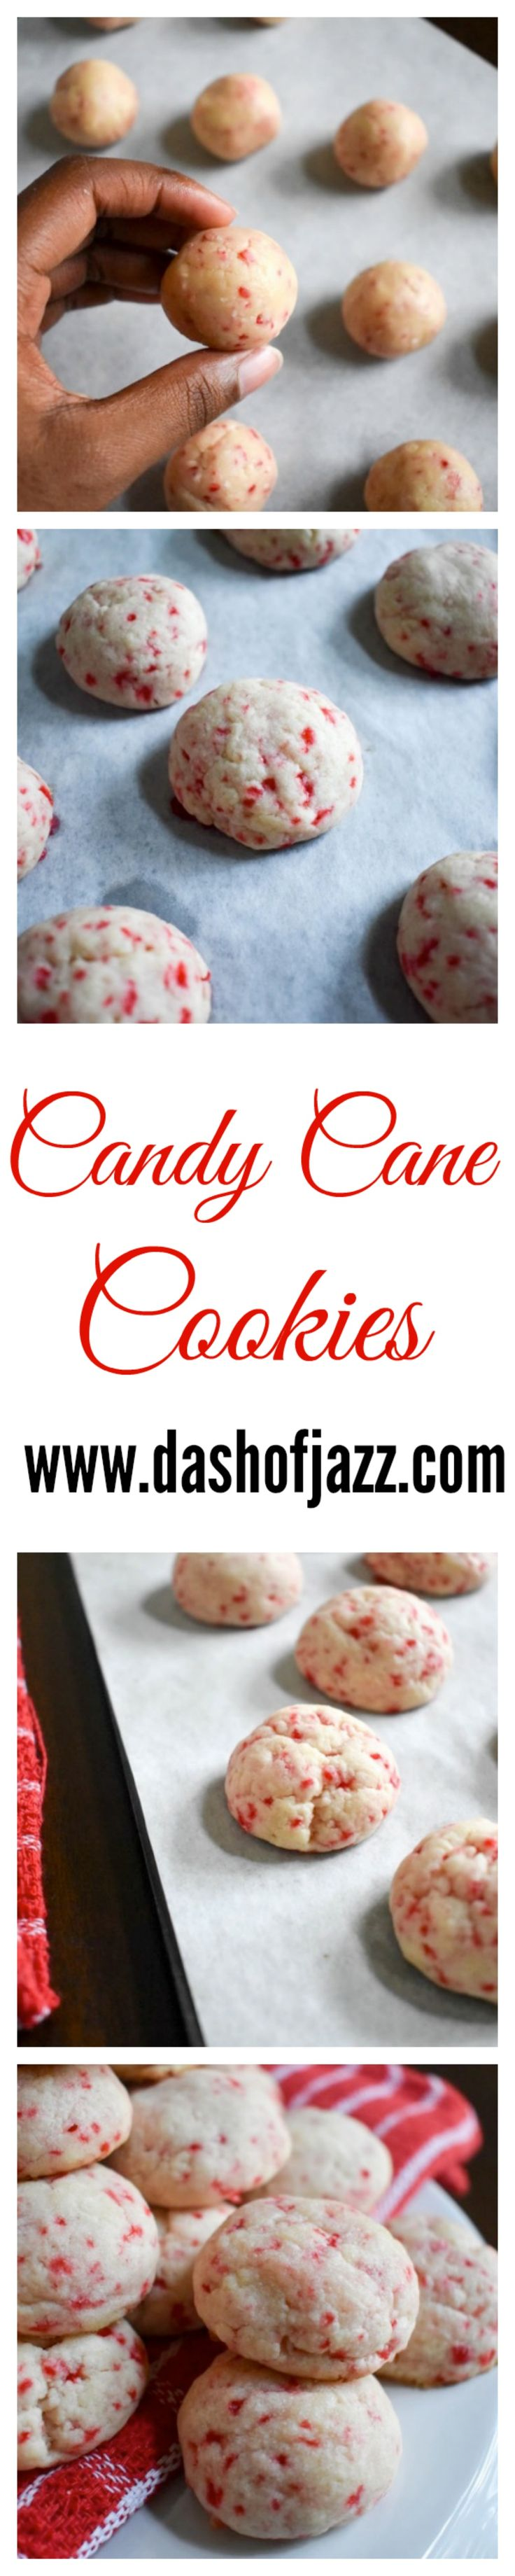 Candy Cane Cookies | Dash of Jazz